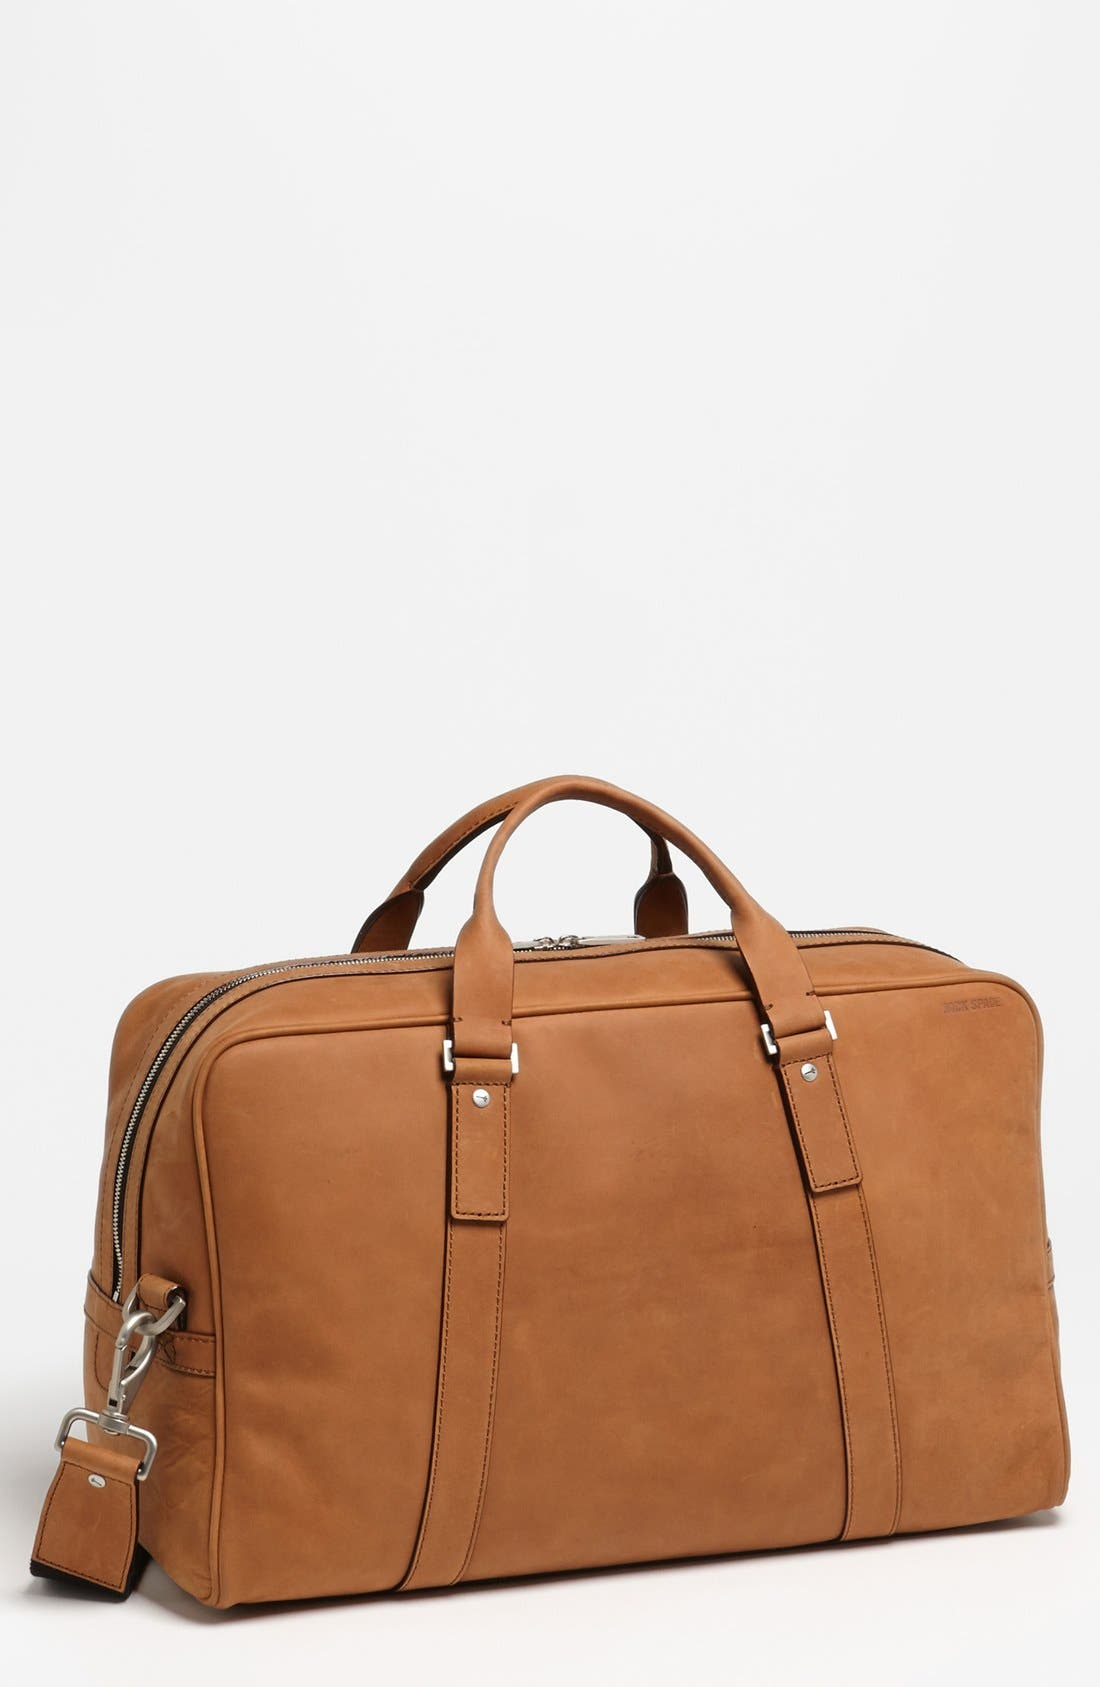 Alternate Image 1 Selected - Jack Spade 'Small - Eaton' Duffel Bag